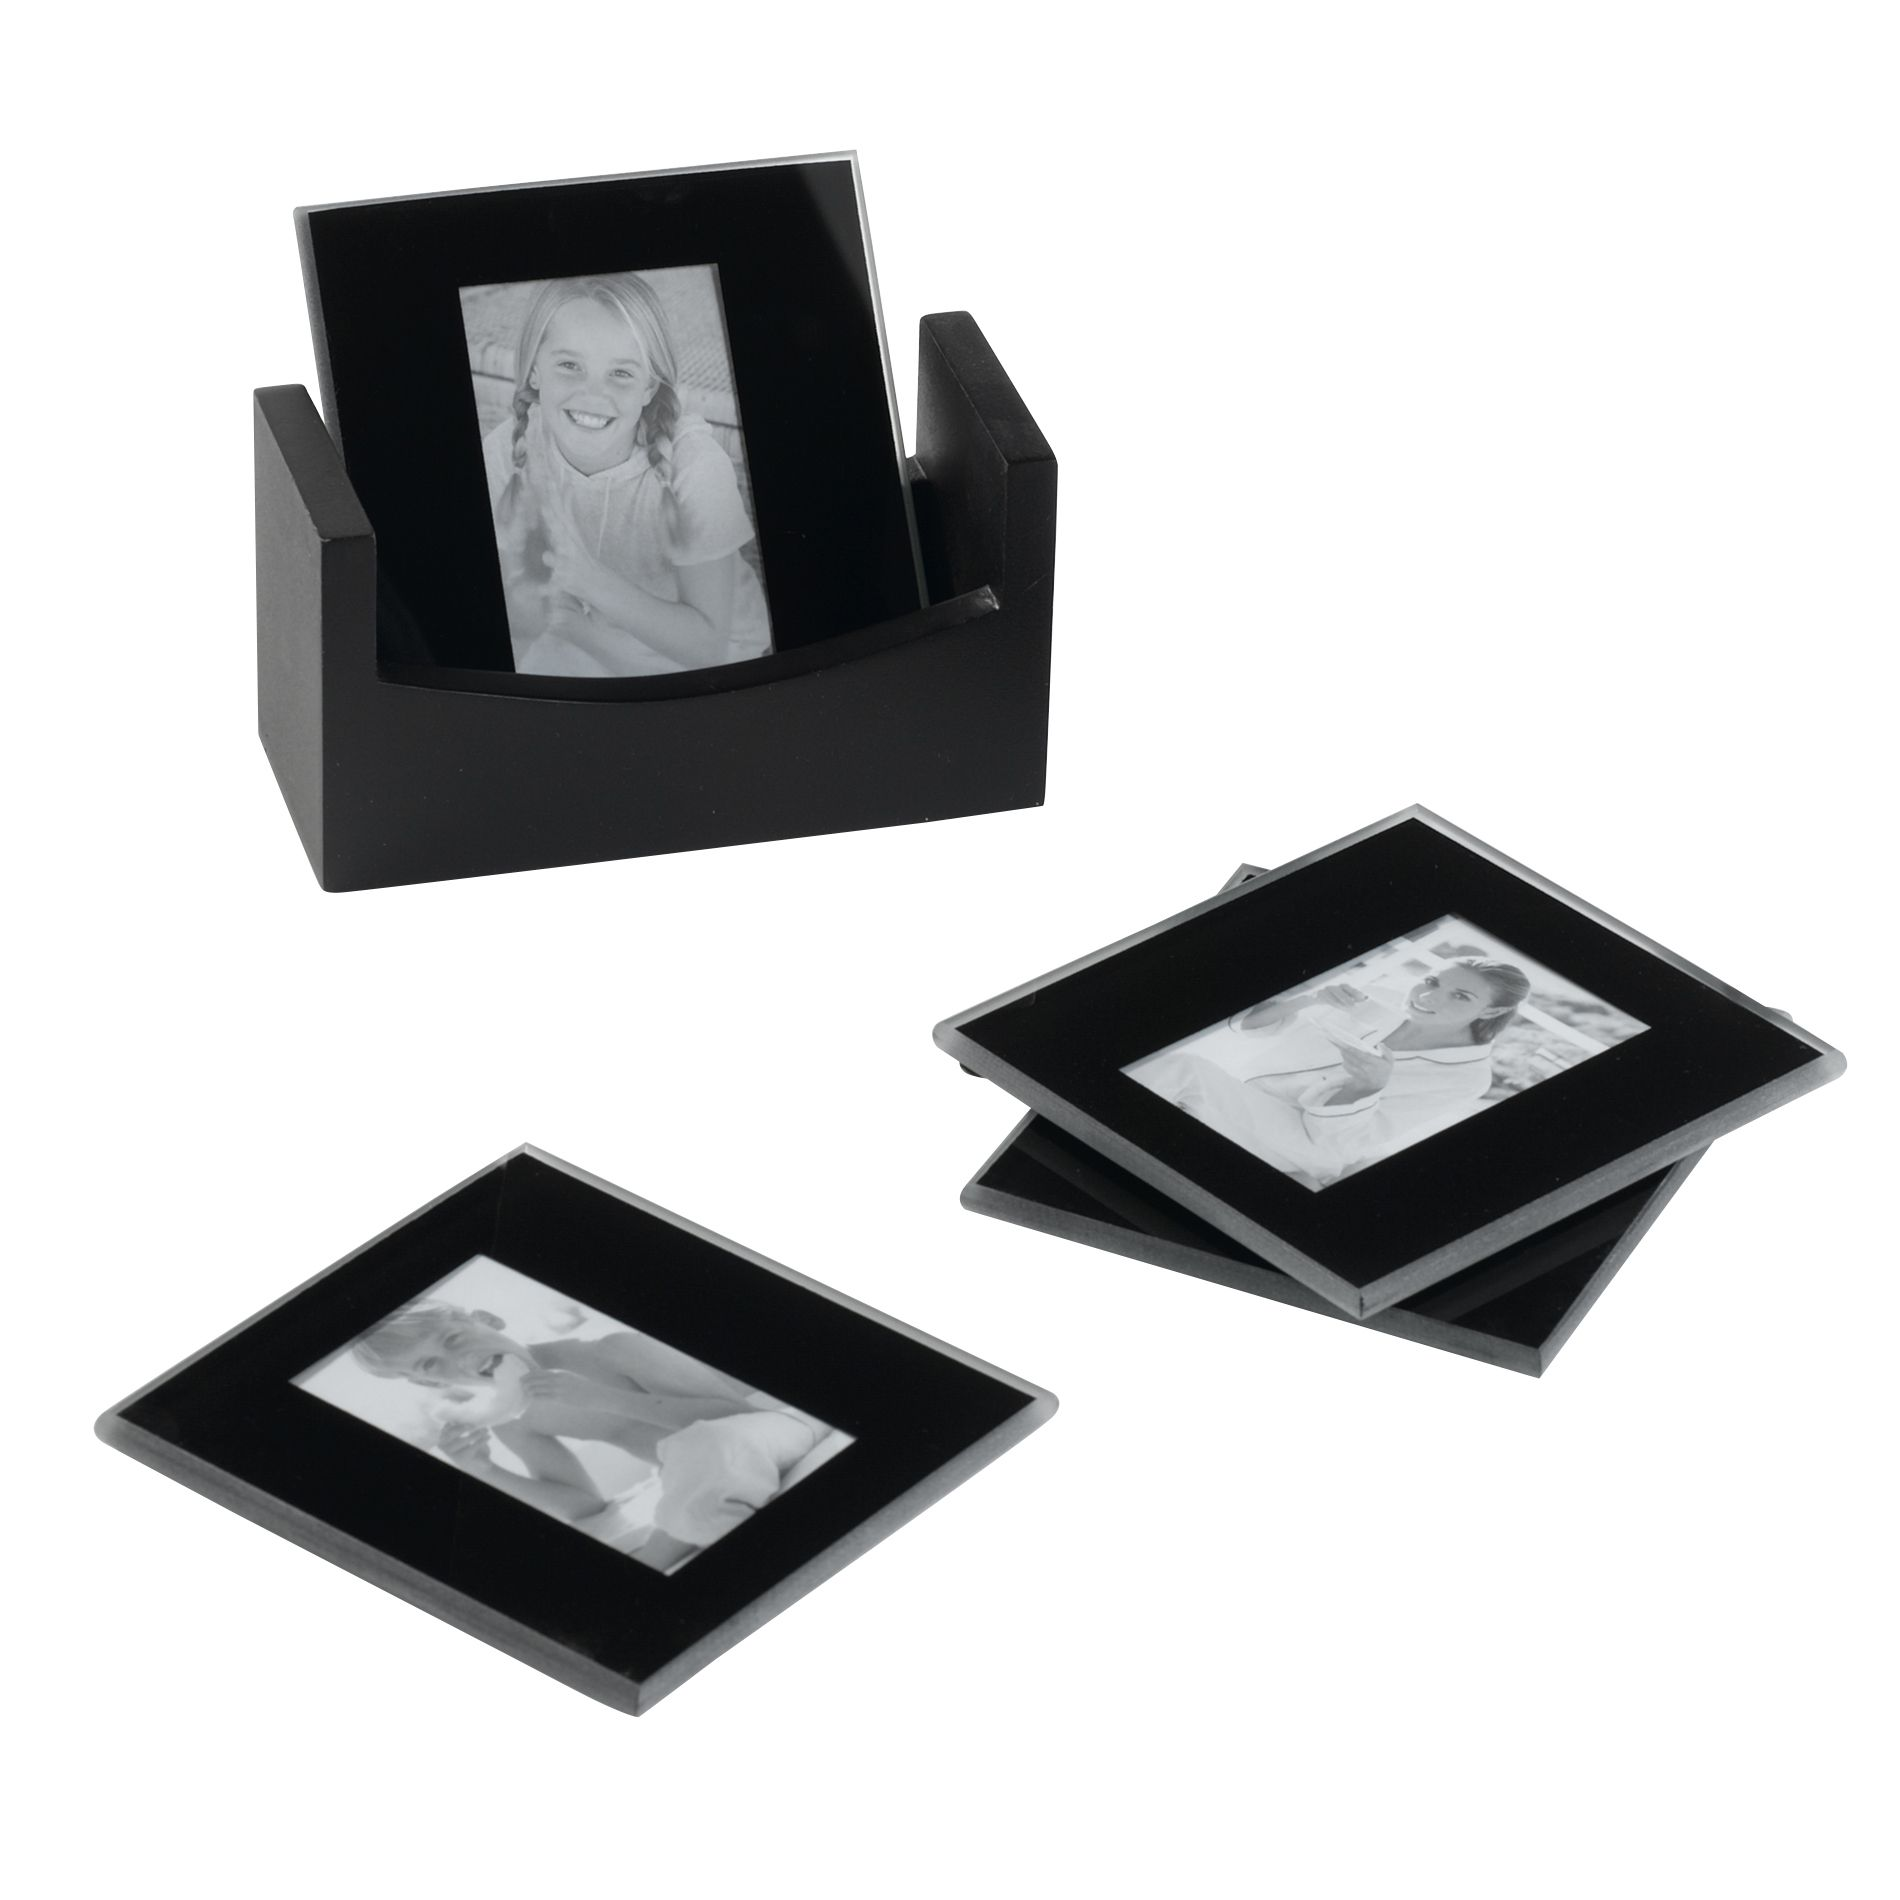 Set Of 4 Black Glass Coaster Frames - Home Decor Decorative Accents